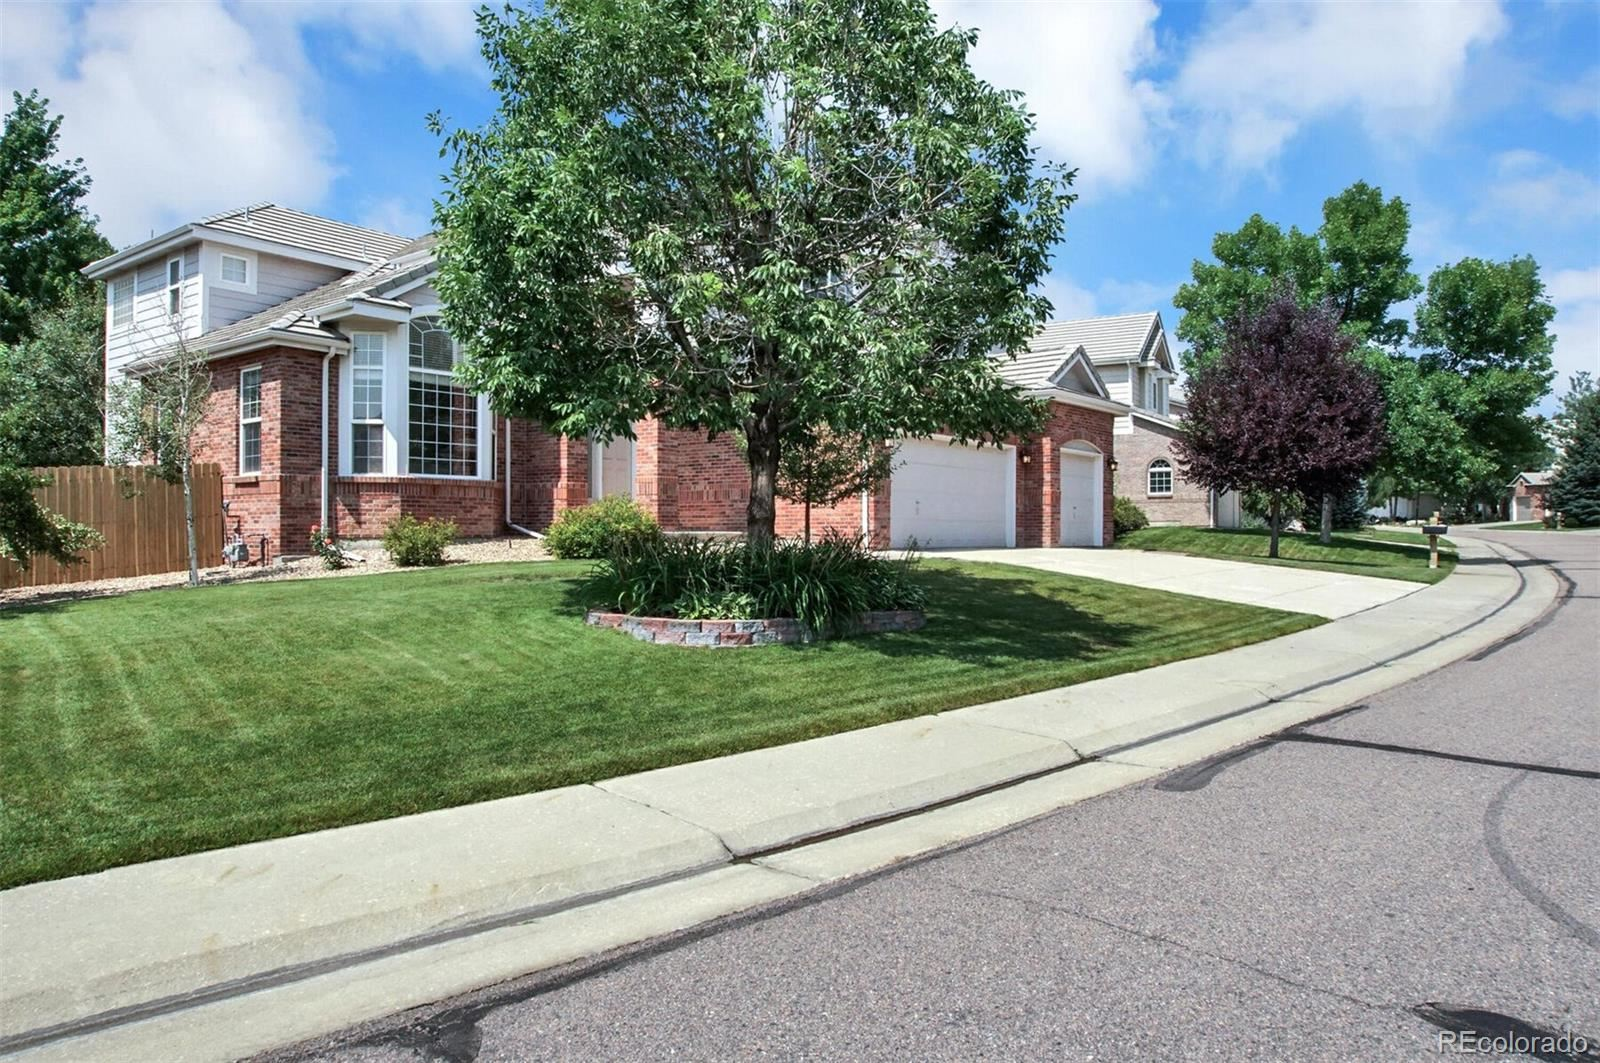 Photo of 3327 Opal Lane, Superior, CO 80027 (MLS # 1769524)